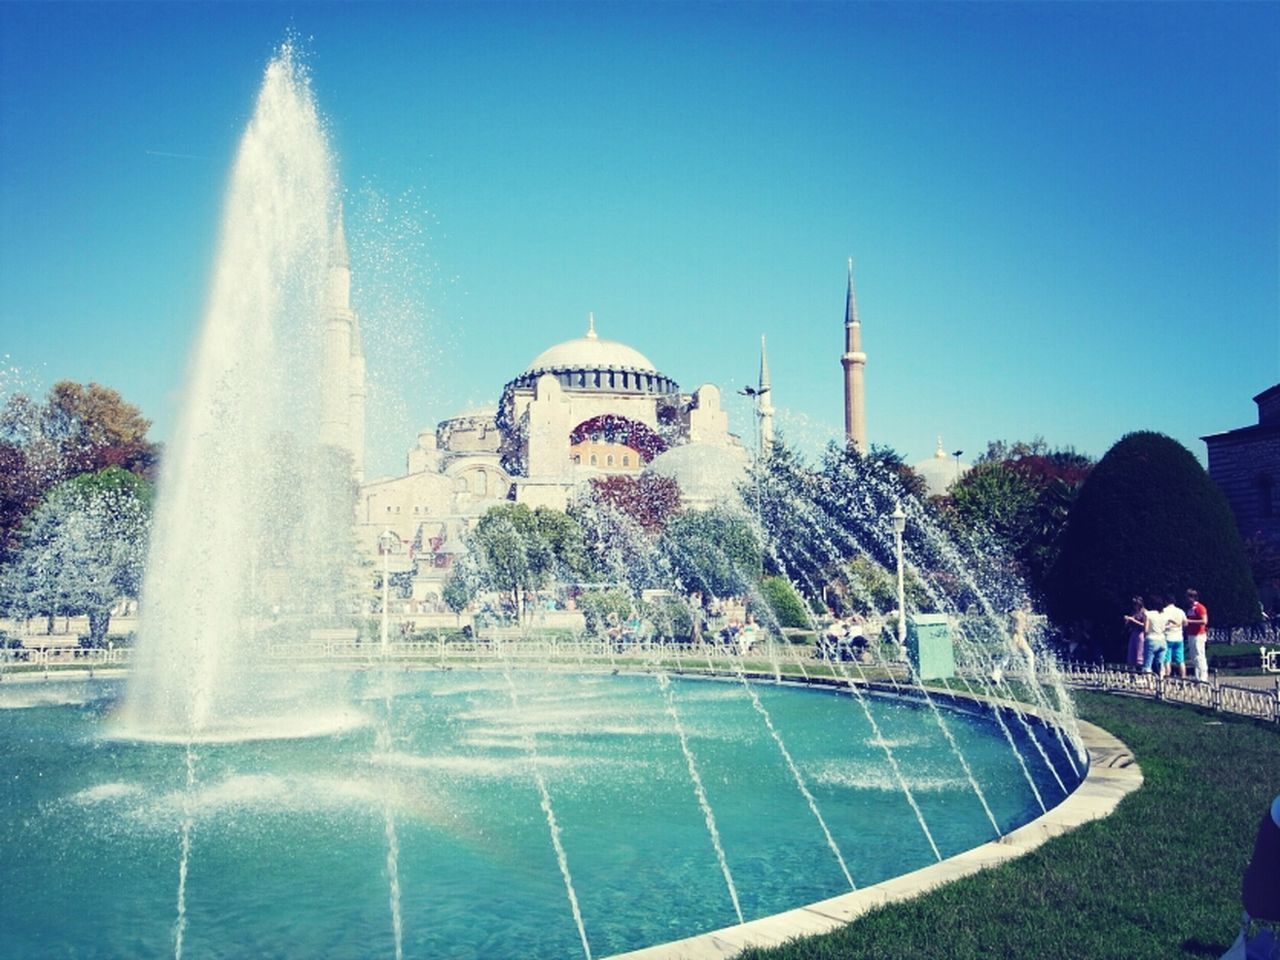 Fountain and mosque in background